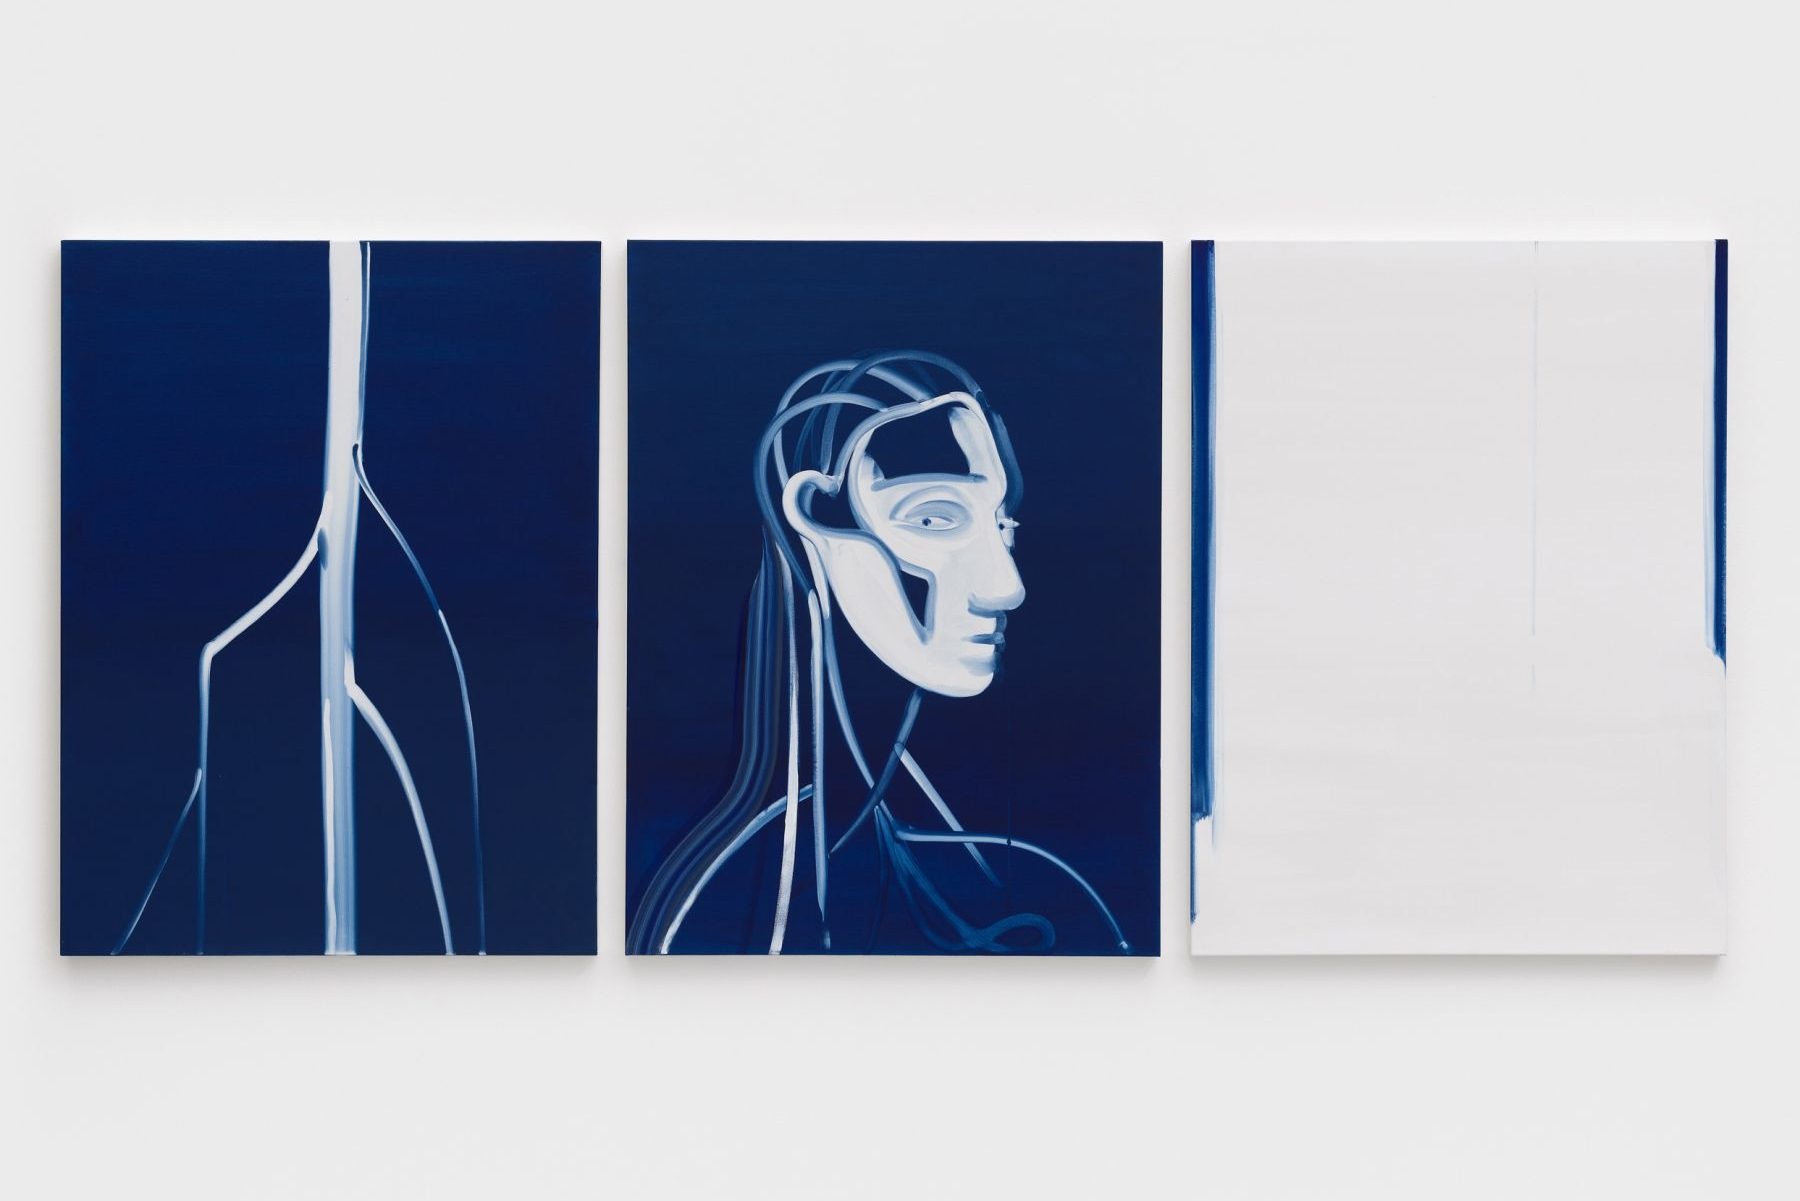 Three paintings hung on a white wall, each in a deep blue and white. The far left painting has a blue background with a white branched object bisecting the canvas. The central painting is a portrait of a android with a white face and transparent head, neck and shoulders with strokes of white. The far right painting is mostly white with two blue strips on each side.